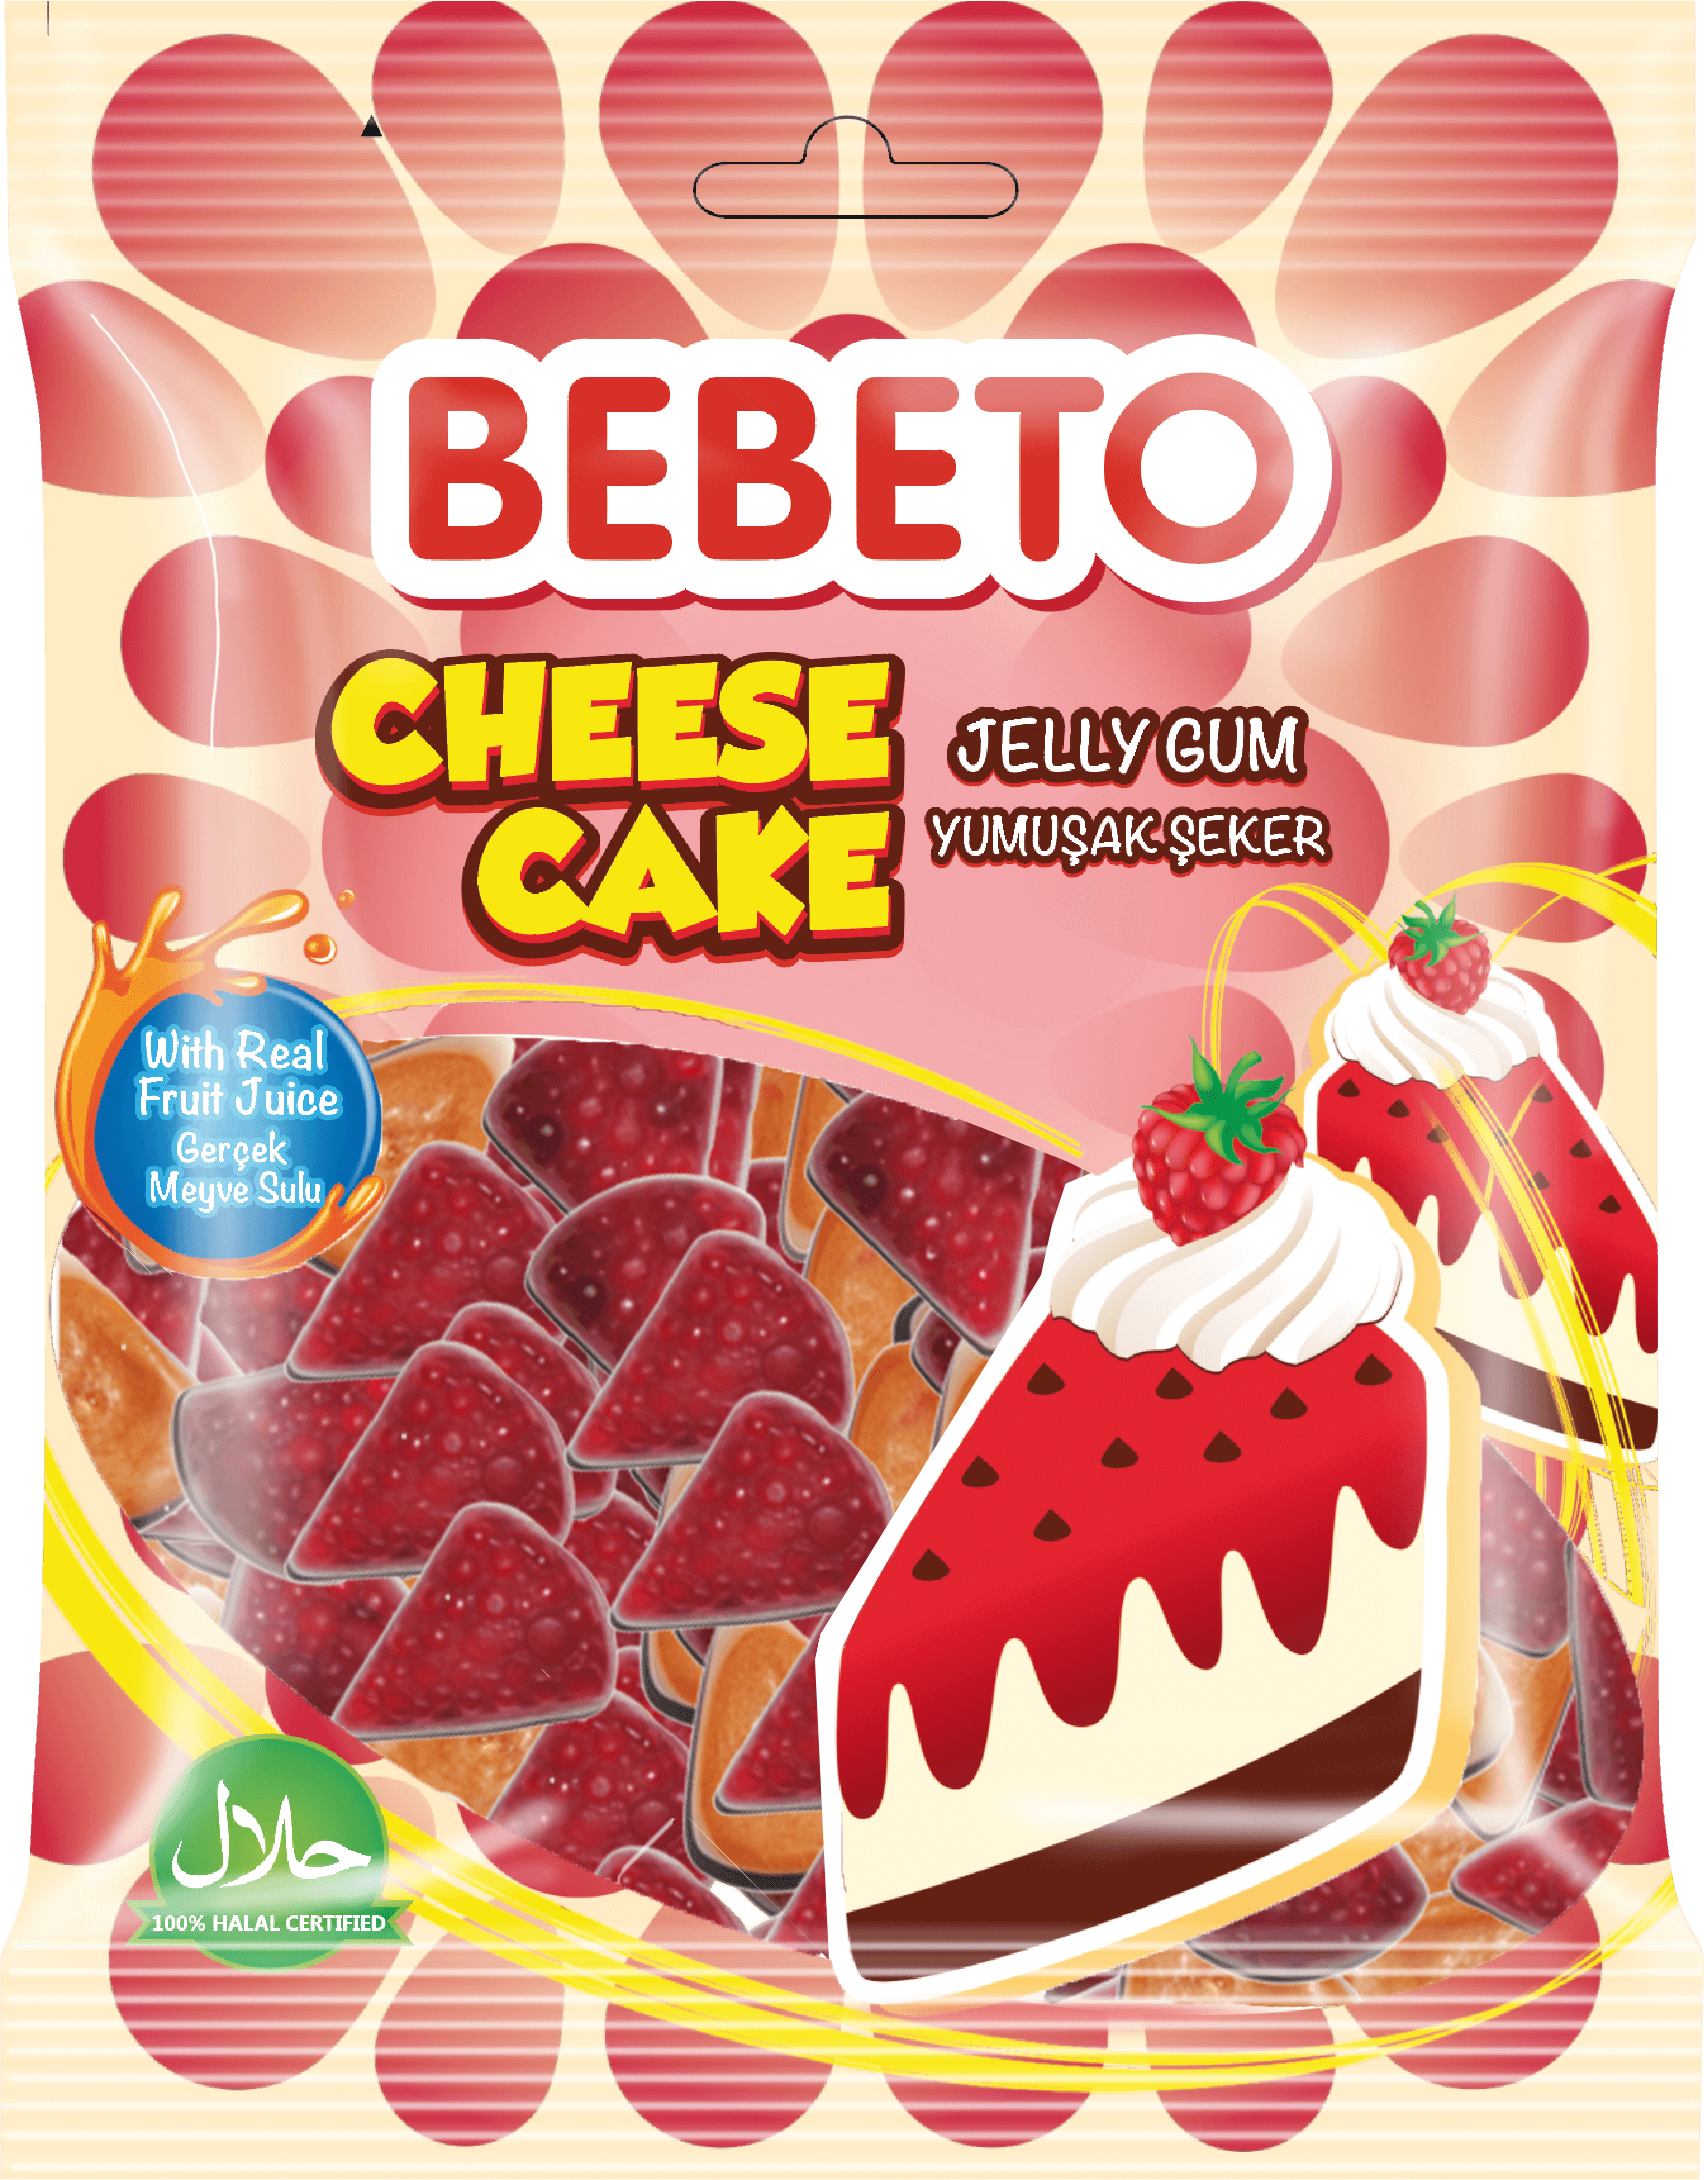 Bebeto Cheese Cake